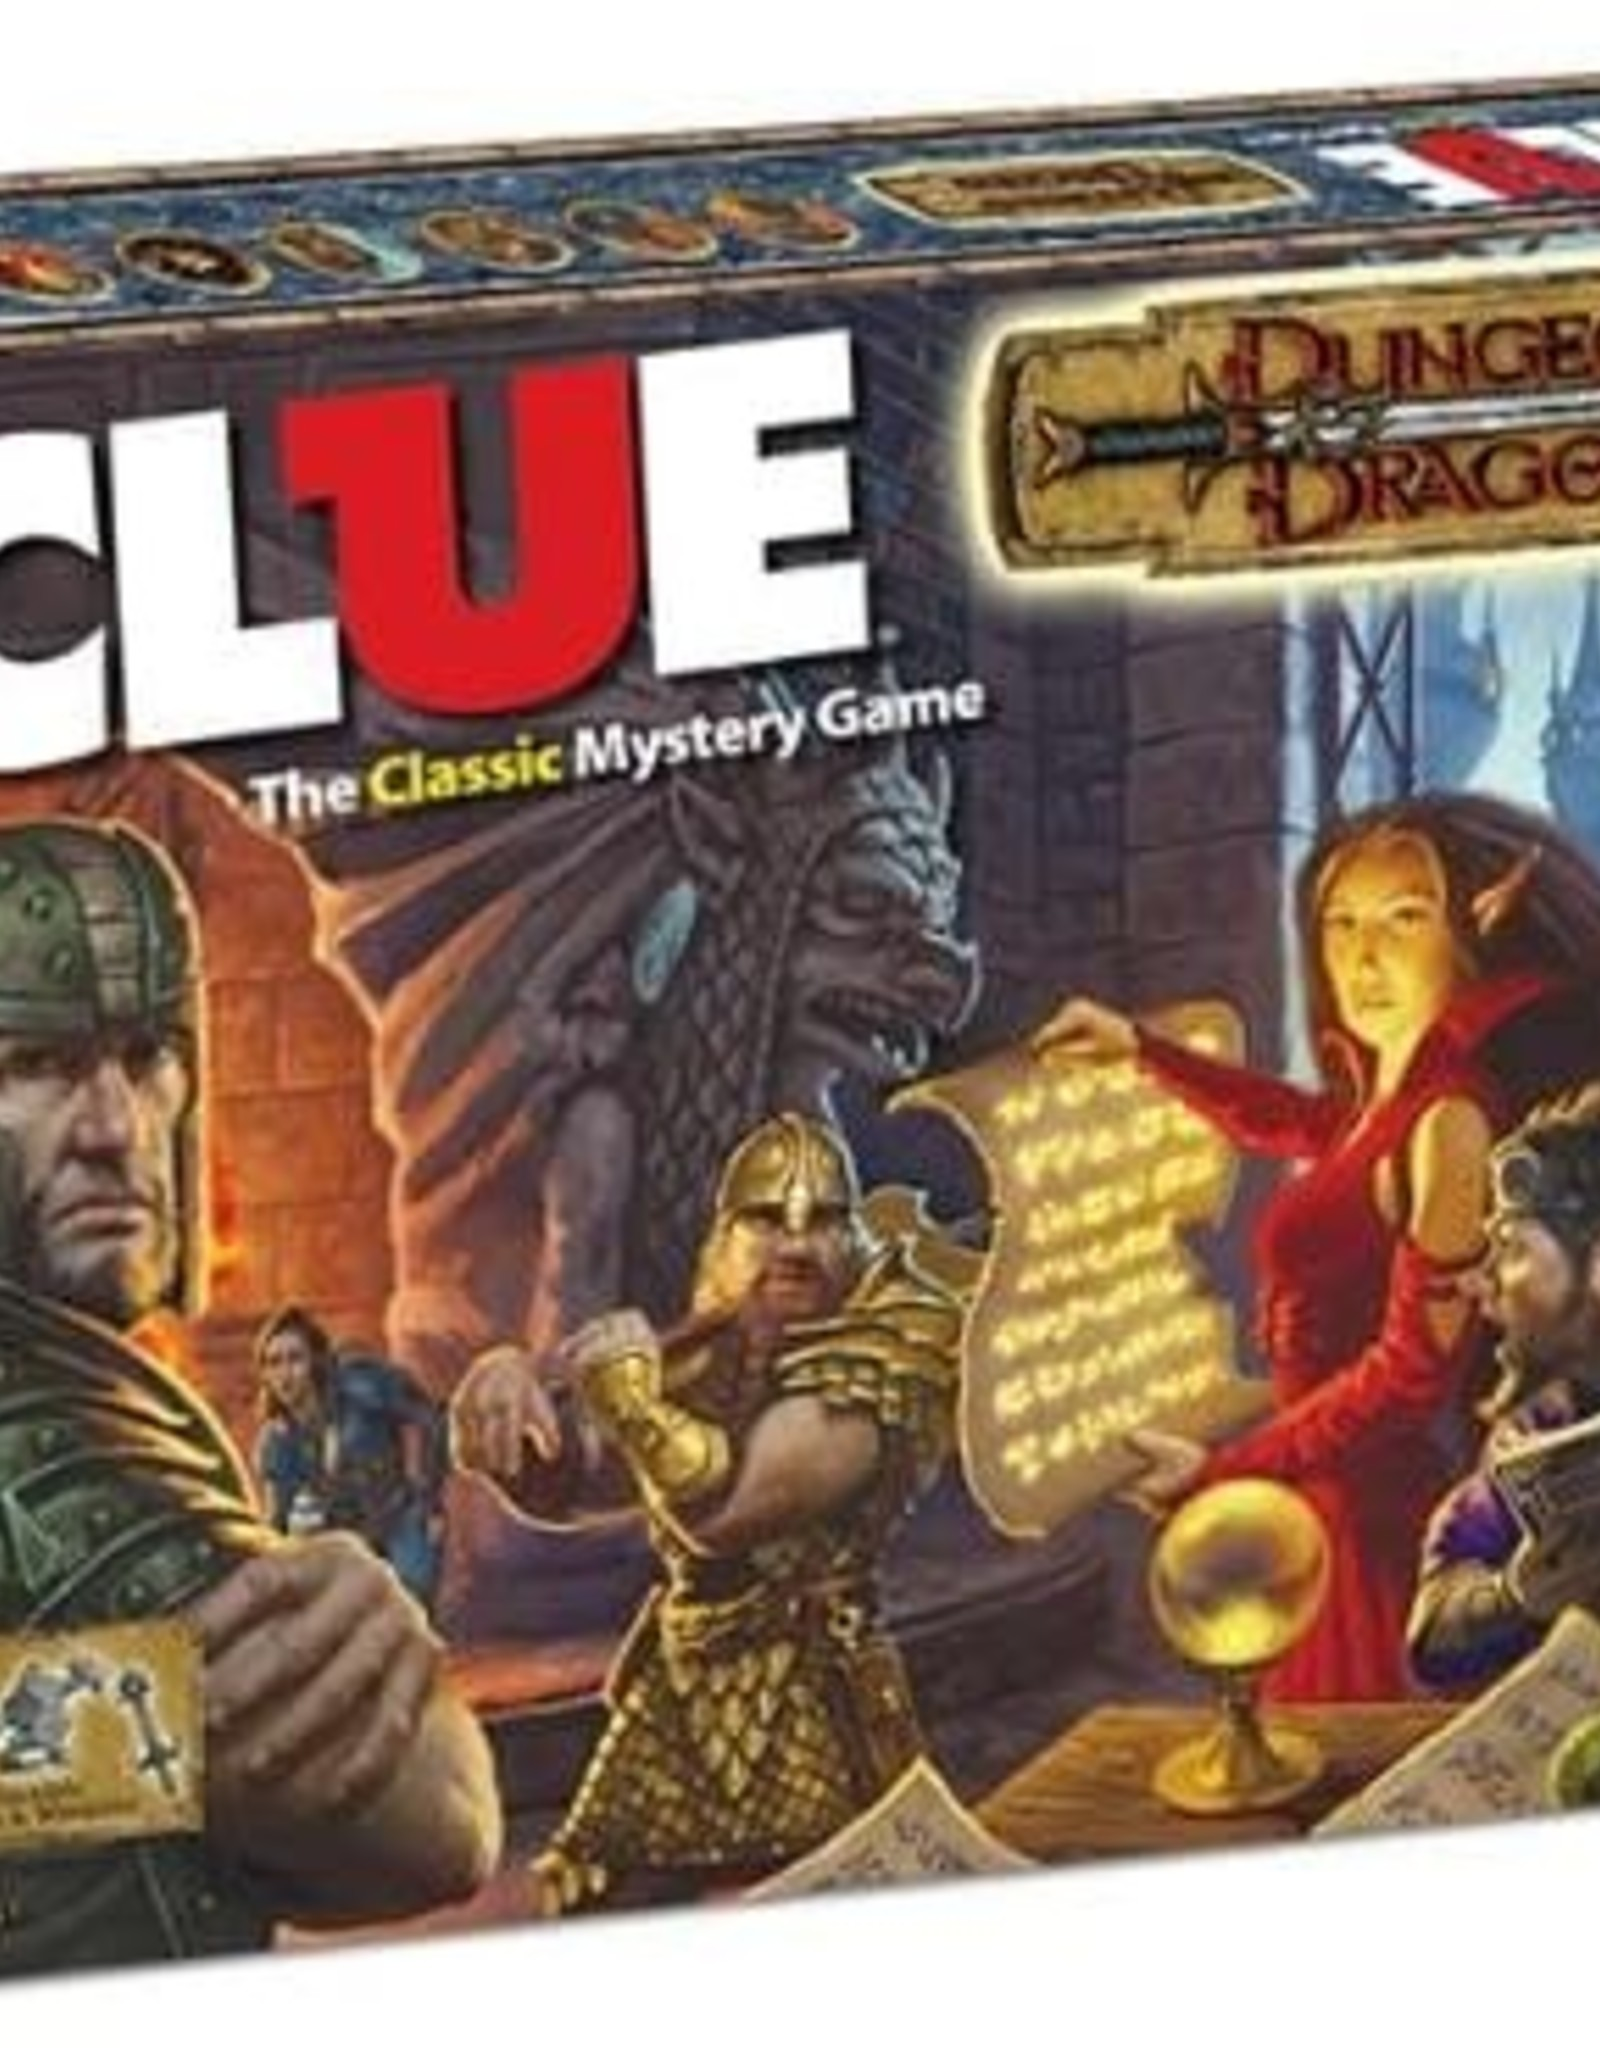 The Op Clue Dungeons & Dragons